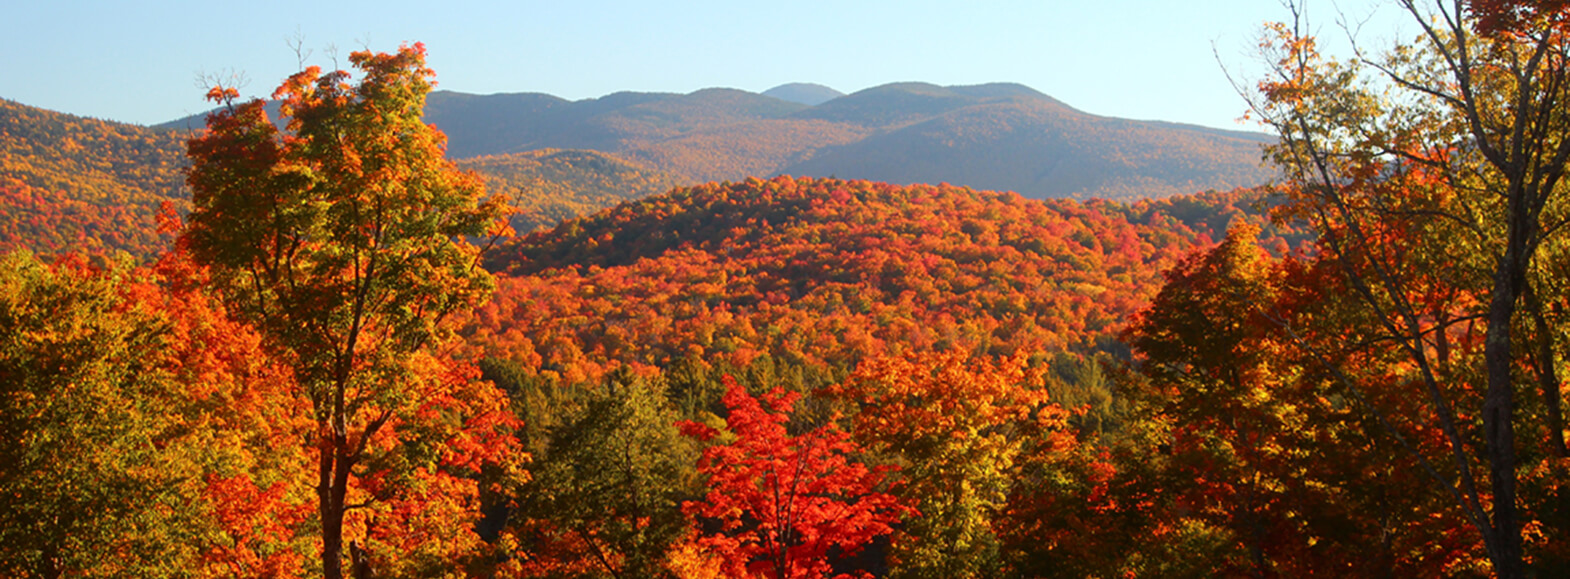 Vibrant fall foliage lights up the Adirondack Mountains.